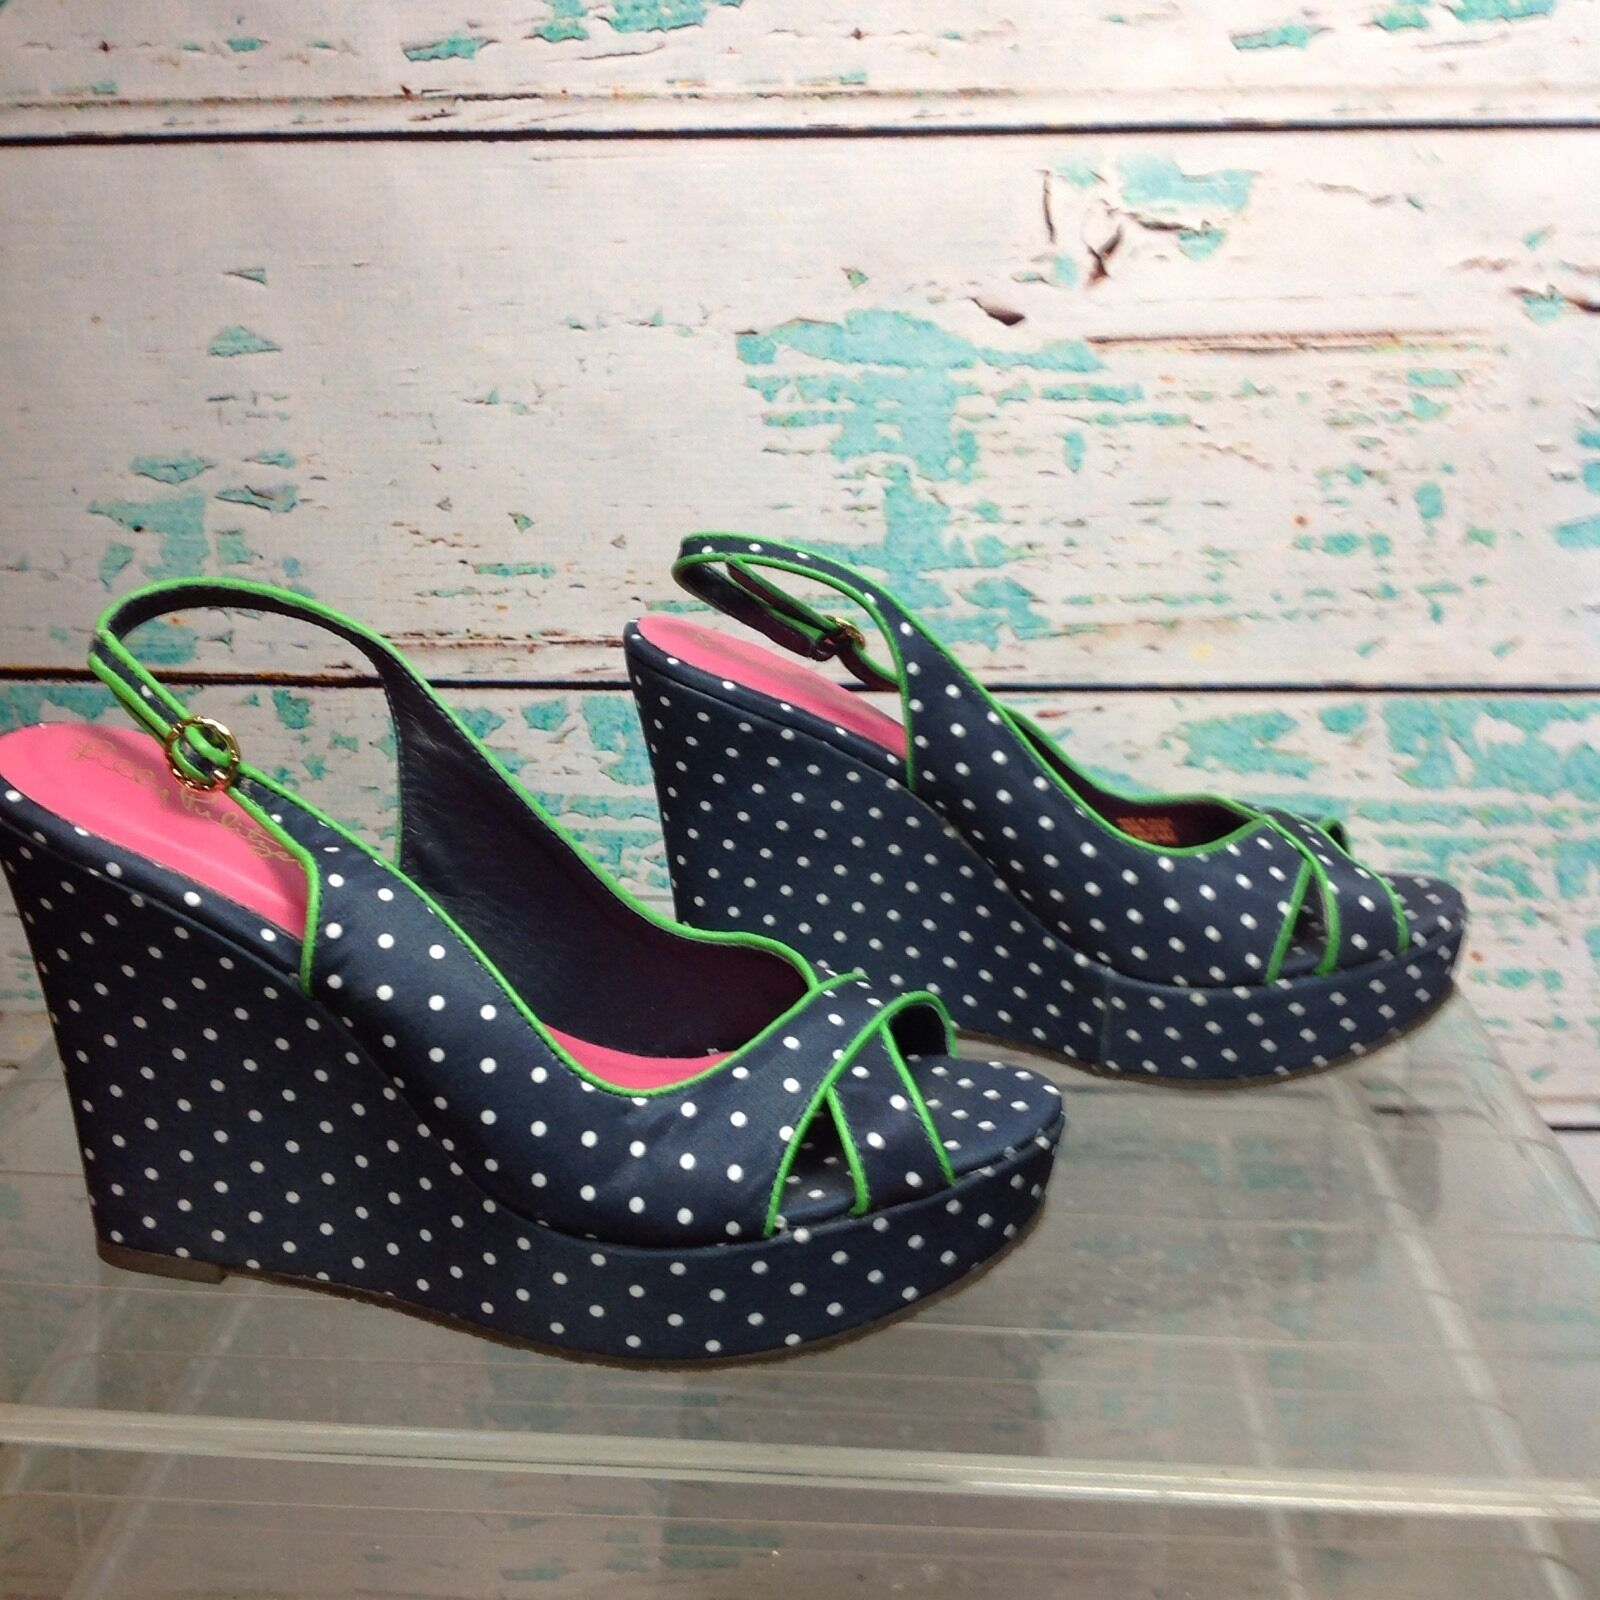 Lilly Lilly Lilly Pulitzer Navy Polka Dot Peep Toe Wedge Sandals 7.5 Heels Sling Back Shoes 4a68ca